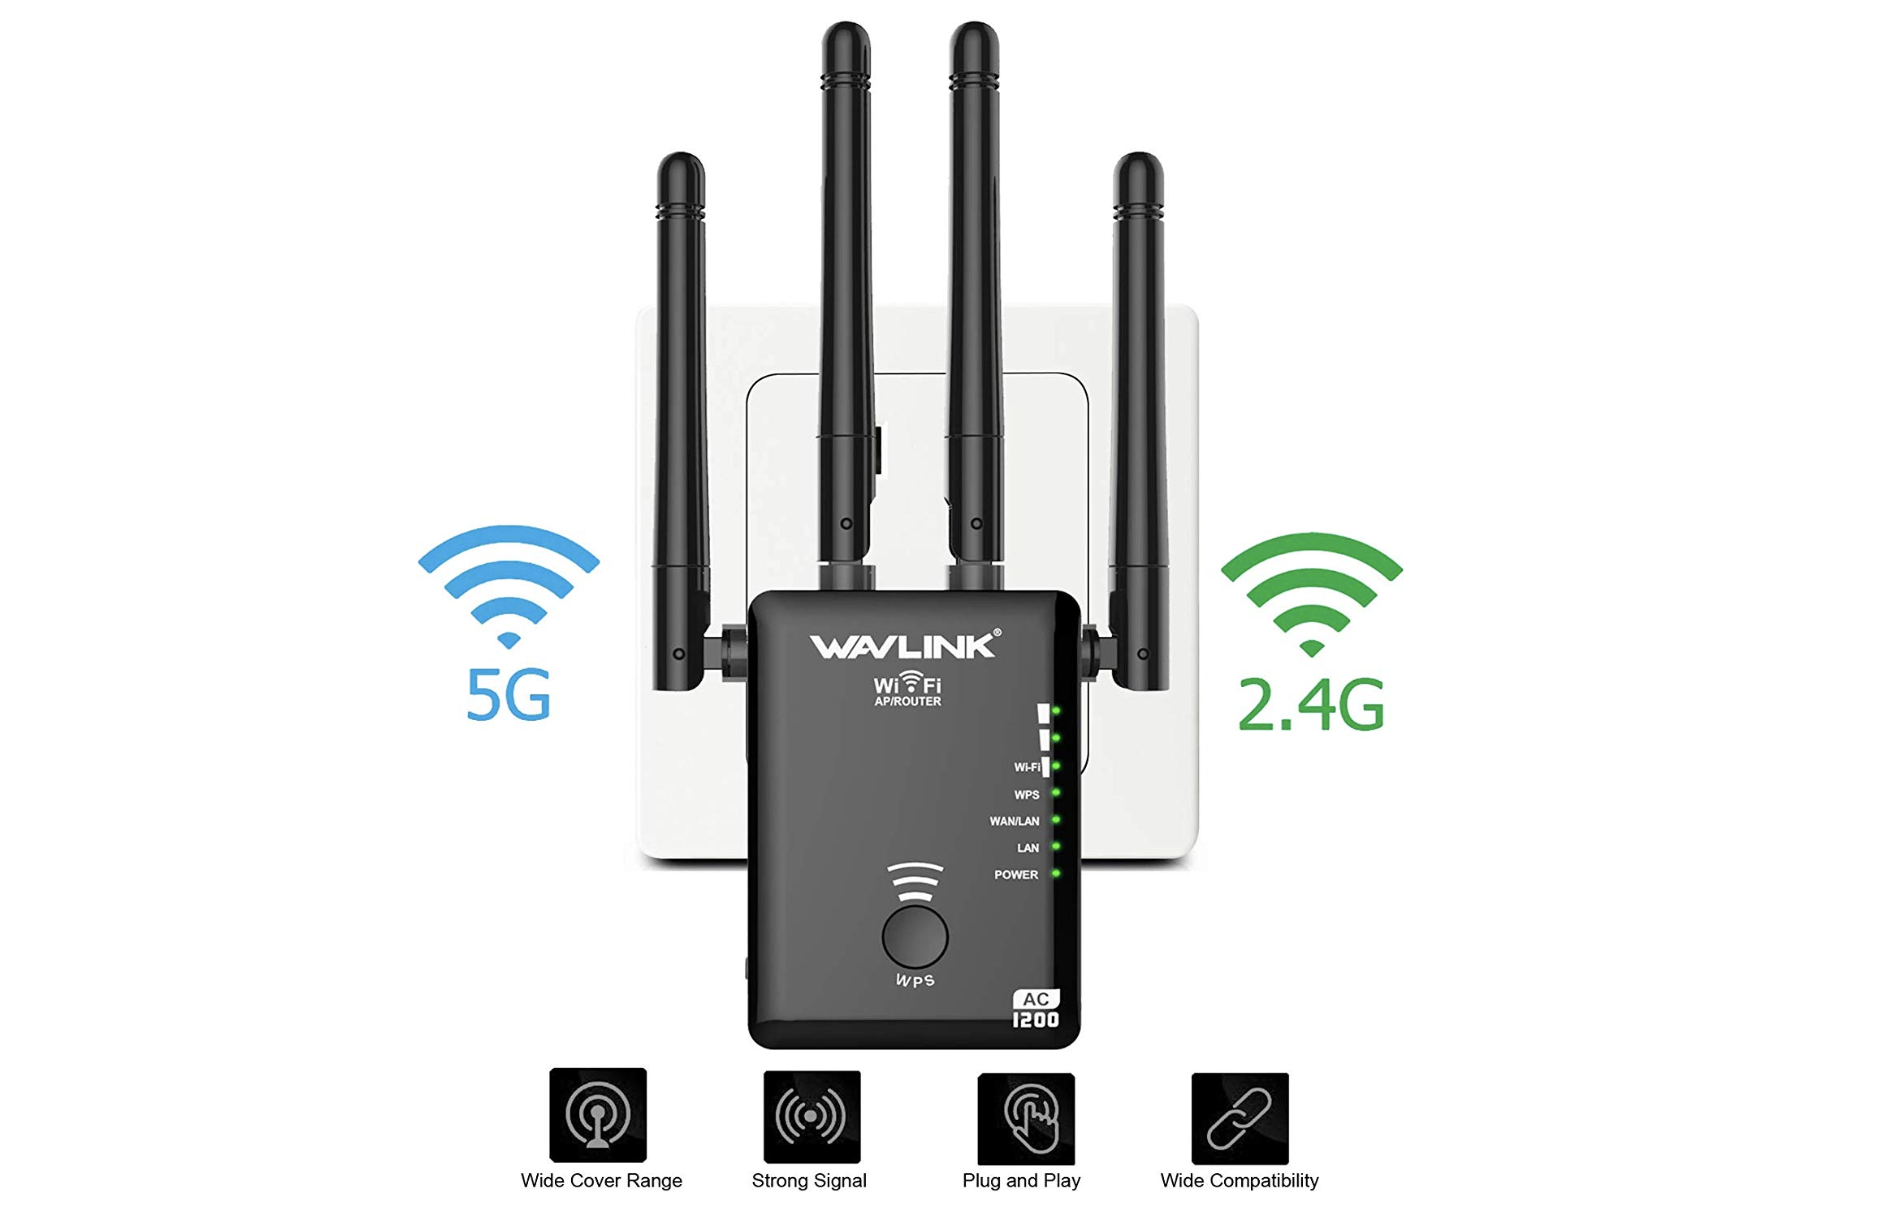 Top 10 Best WiFi Range Extenders of 2020 Review